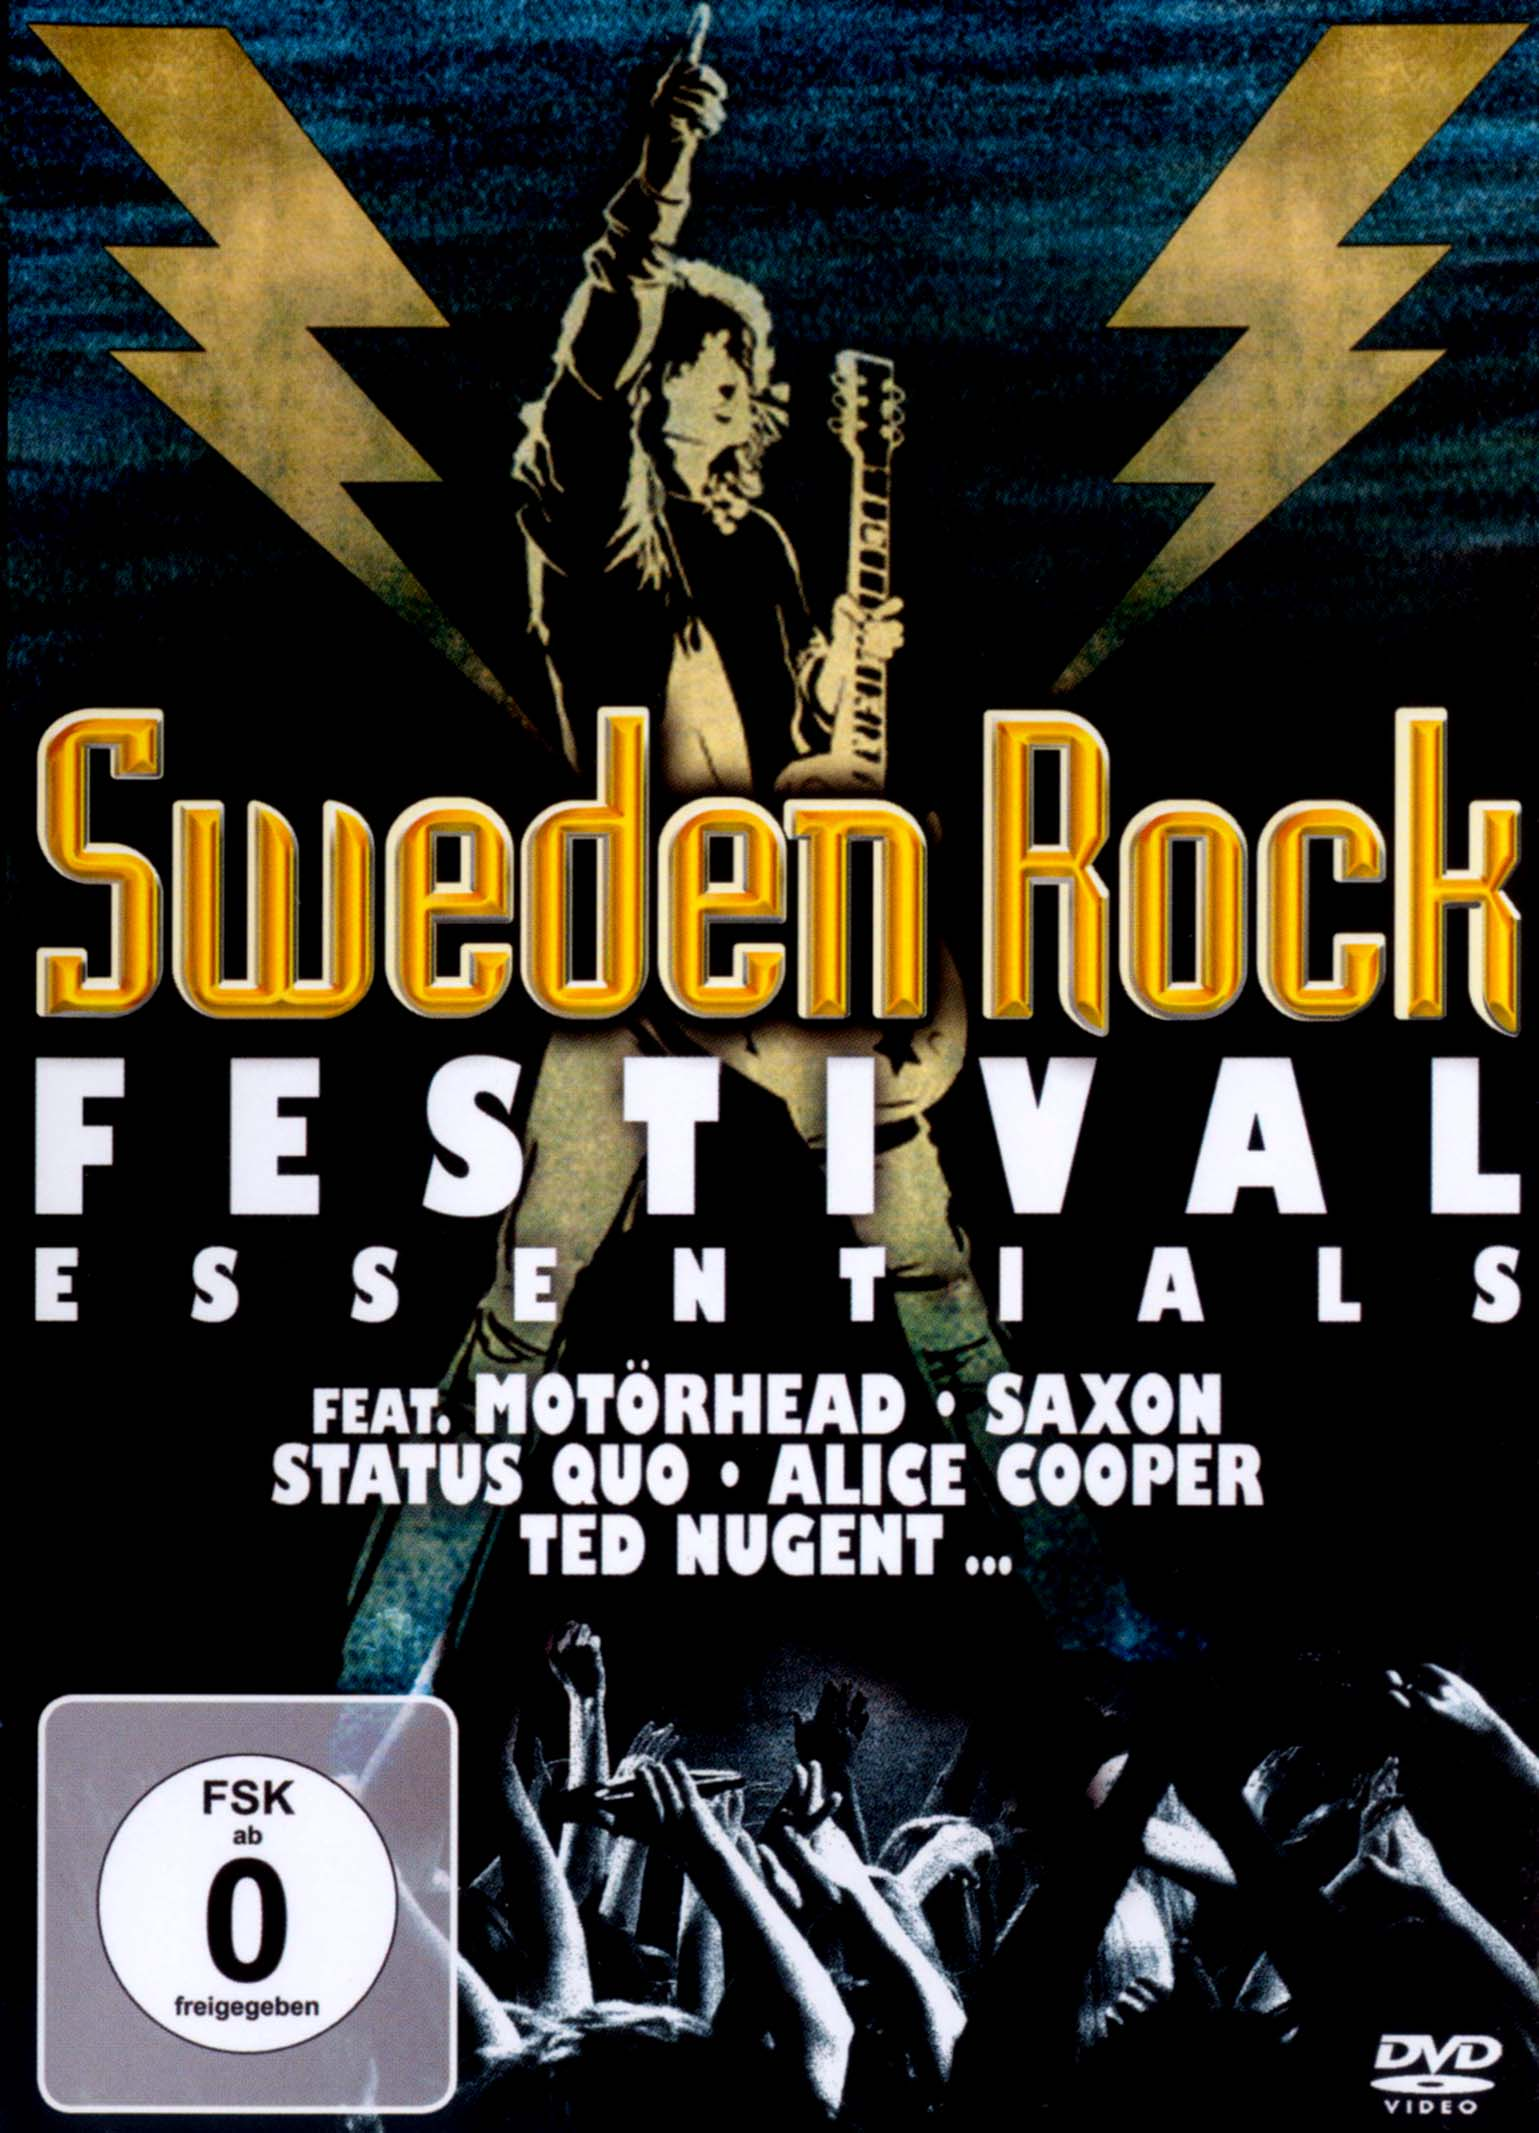 Sweden Rock Festival Essentials